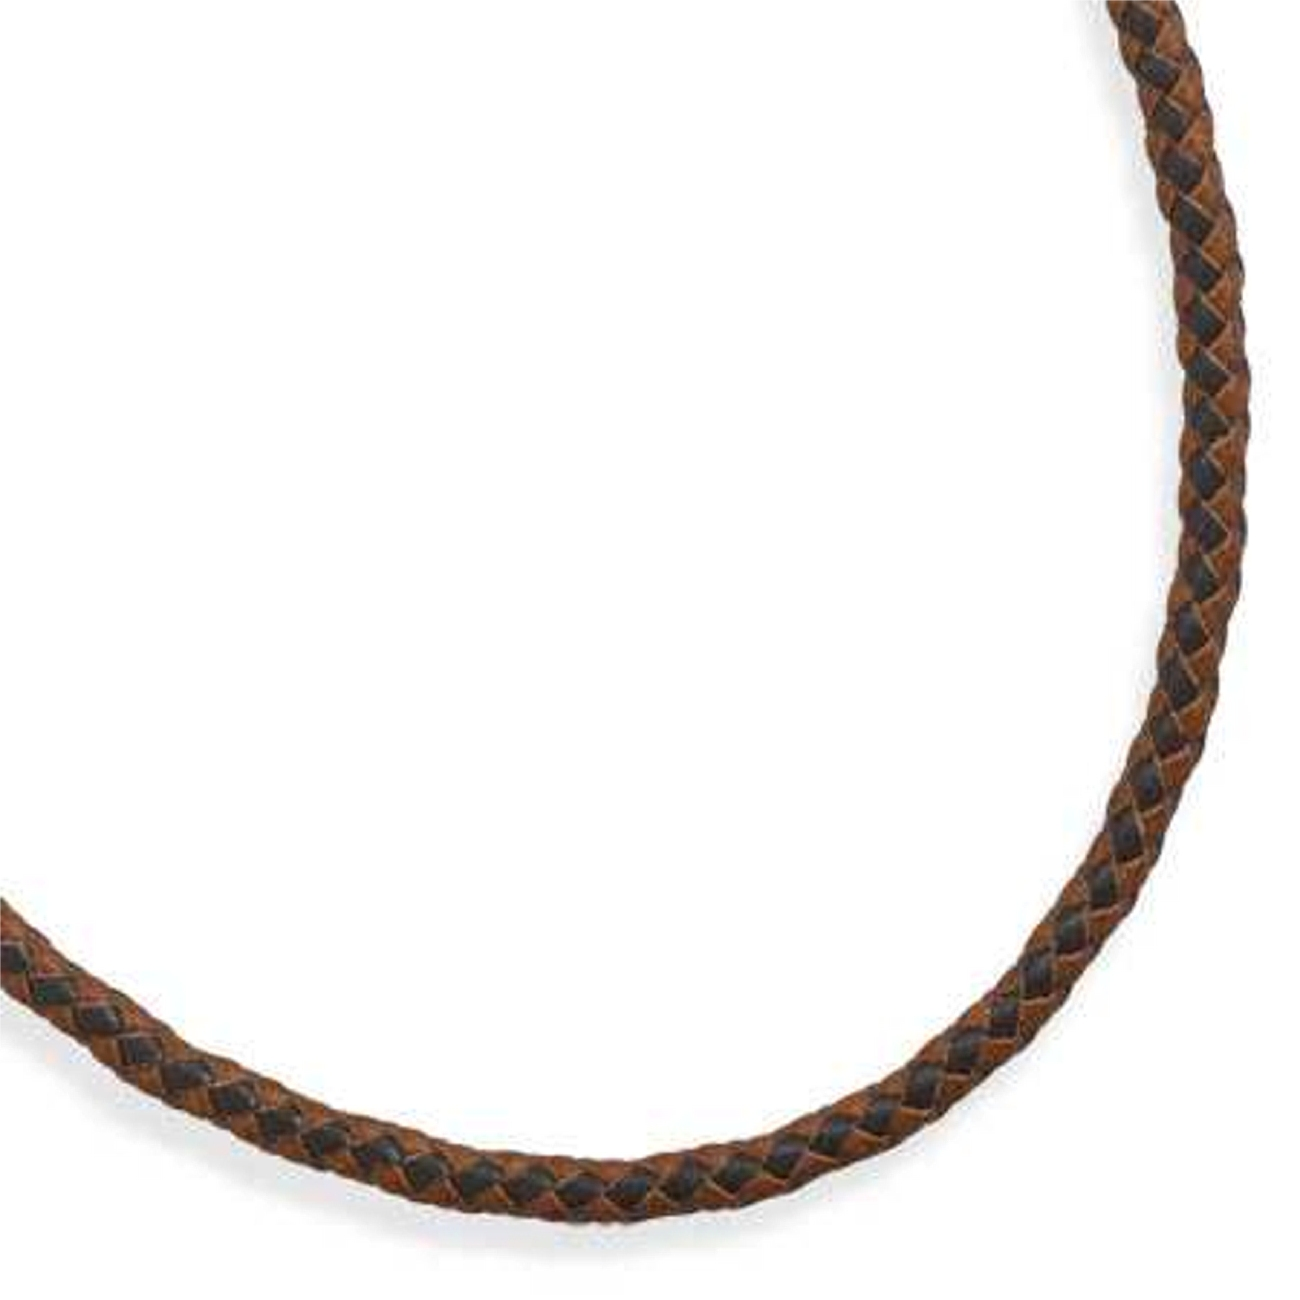 "Men's 20"" Stainless Steel Brown Leather Braided Necklace"